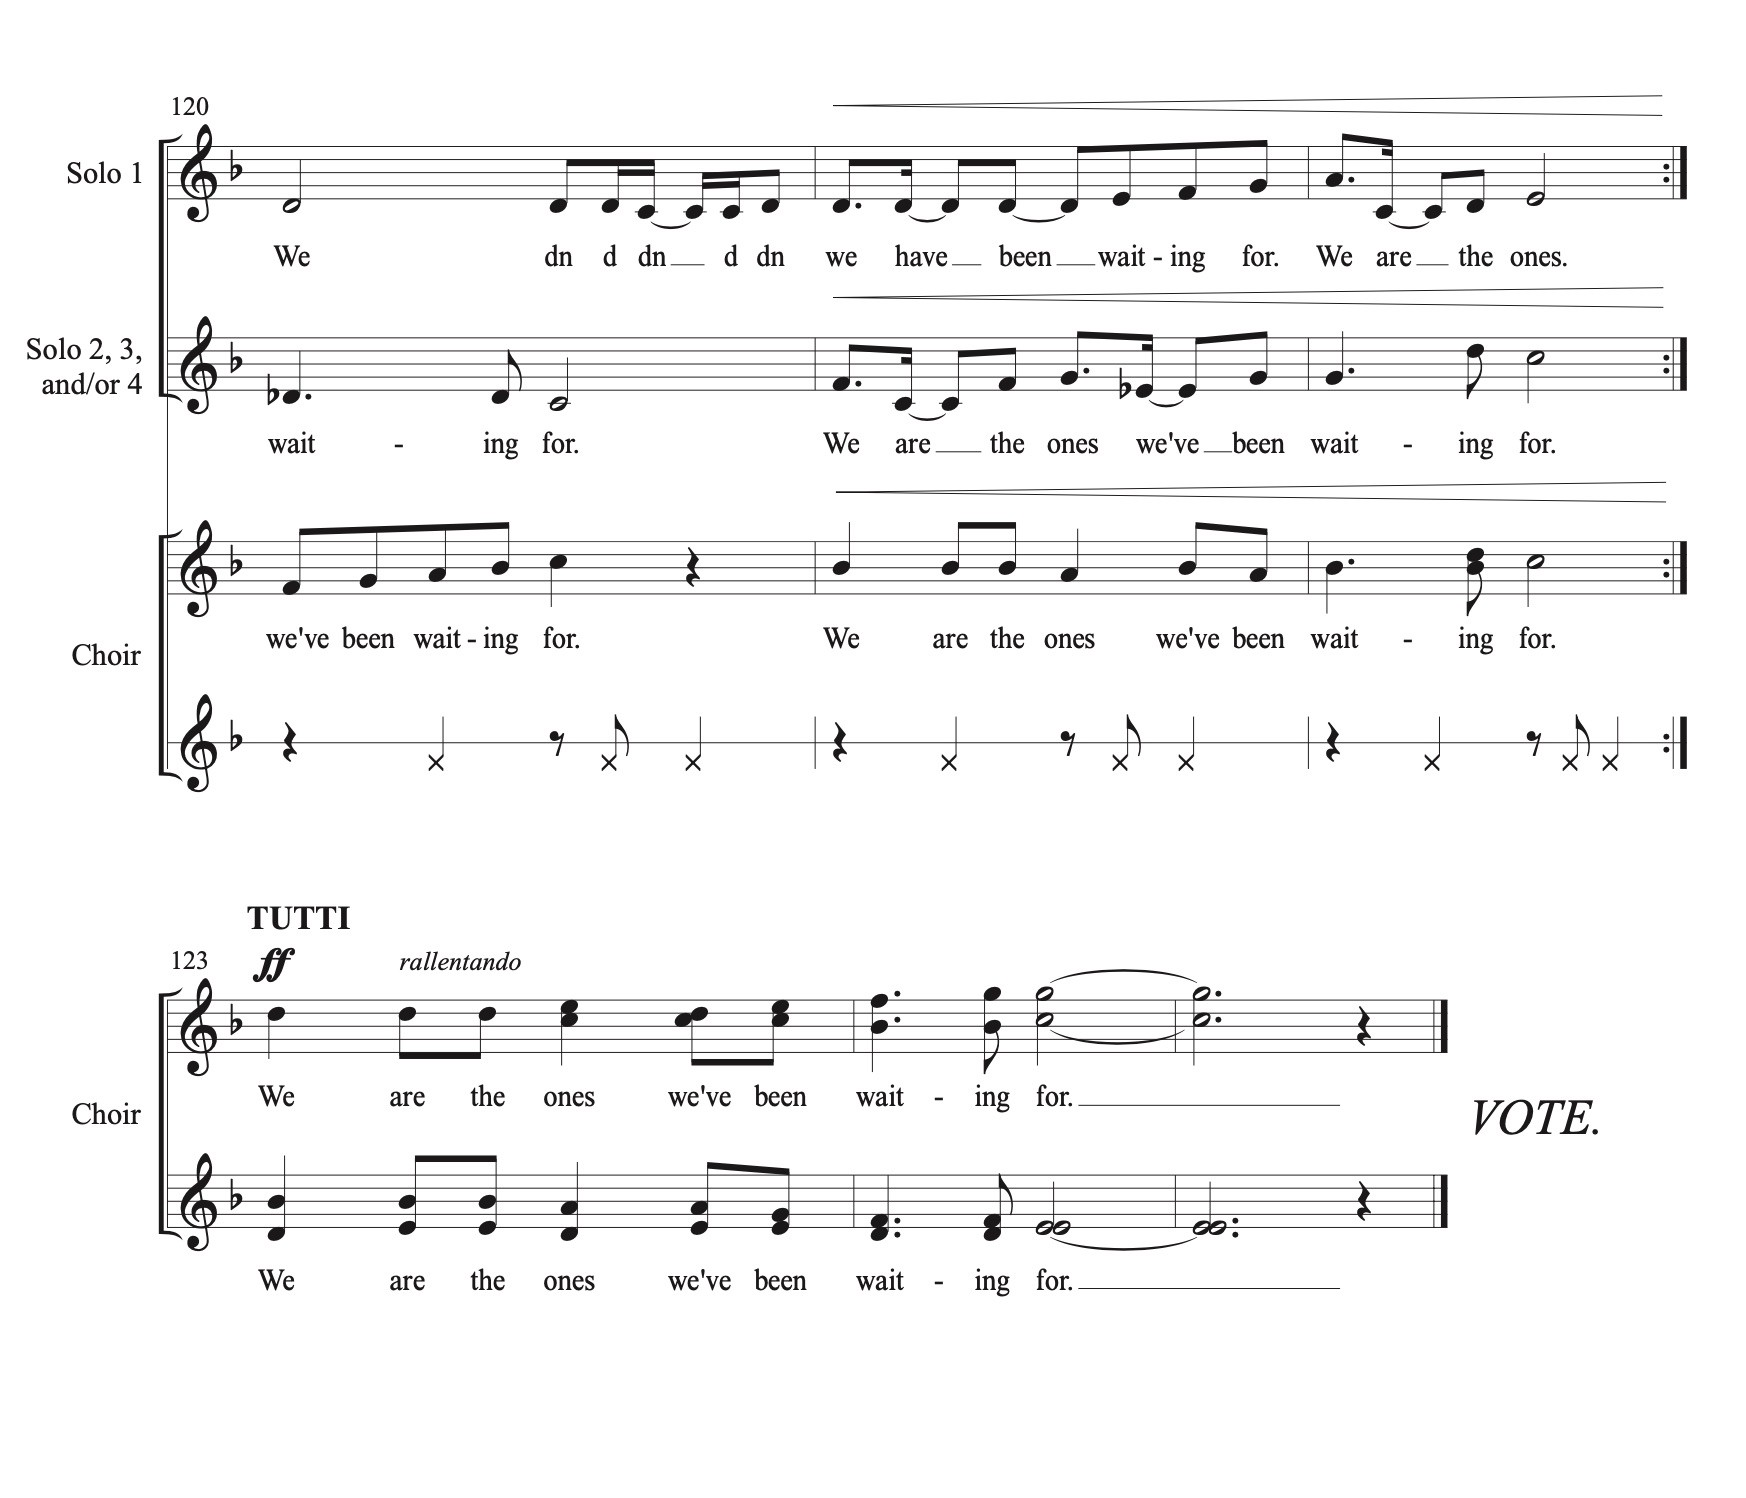 Excerpt from the end of the sheet music showing overlapping voices coming together in 4-part harmony